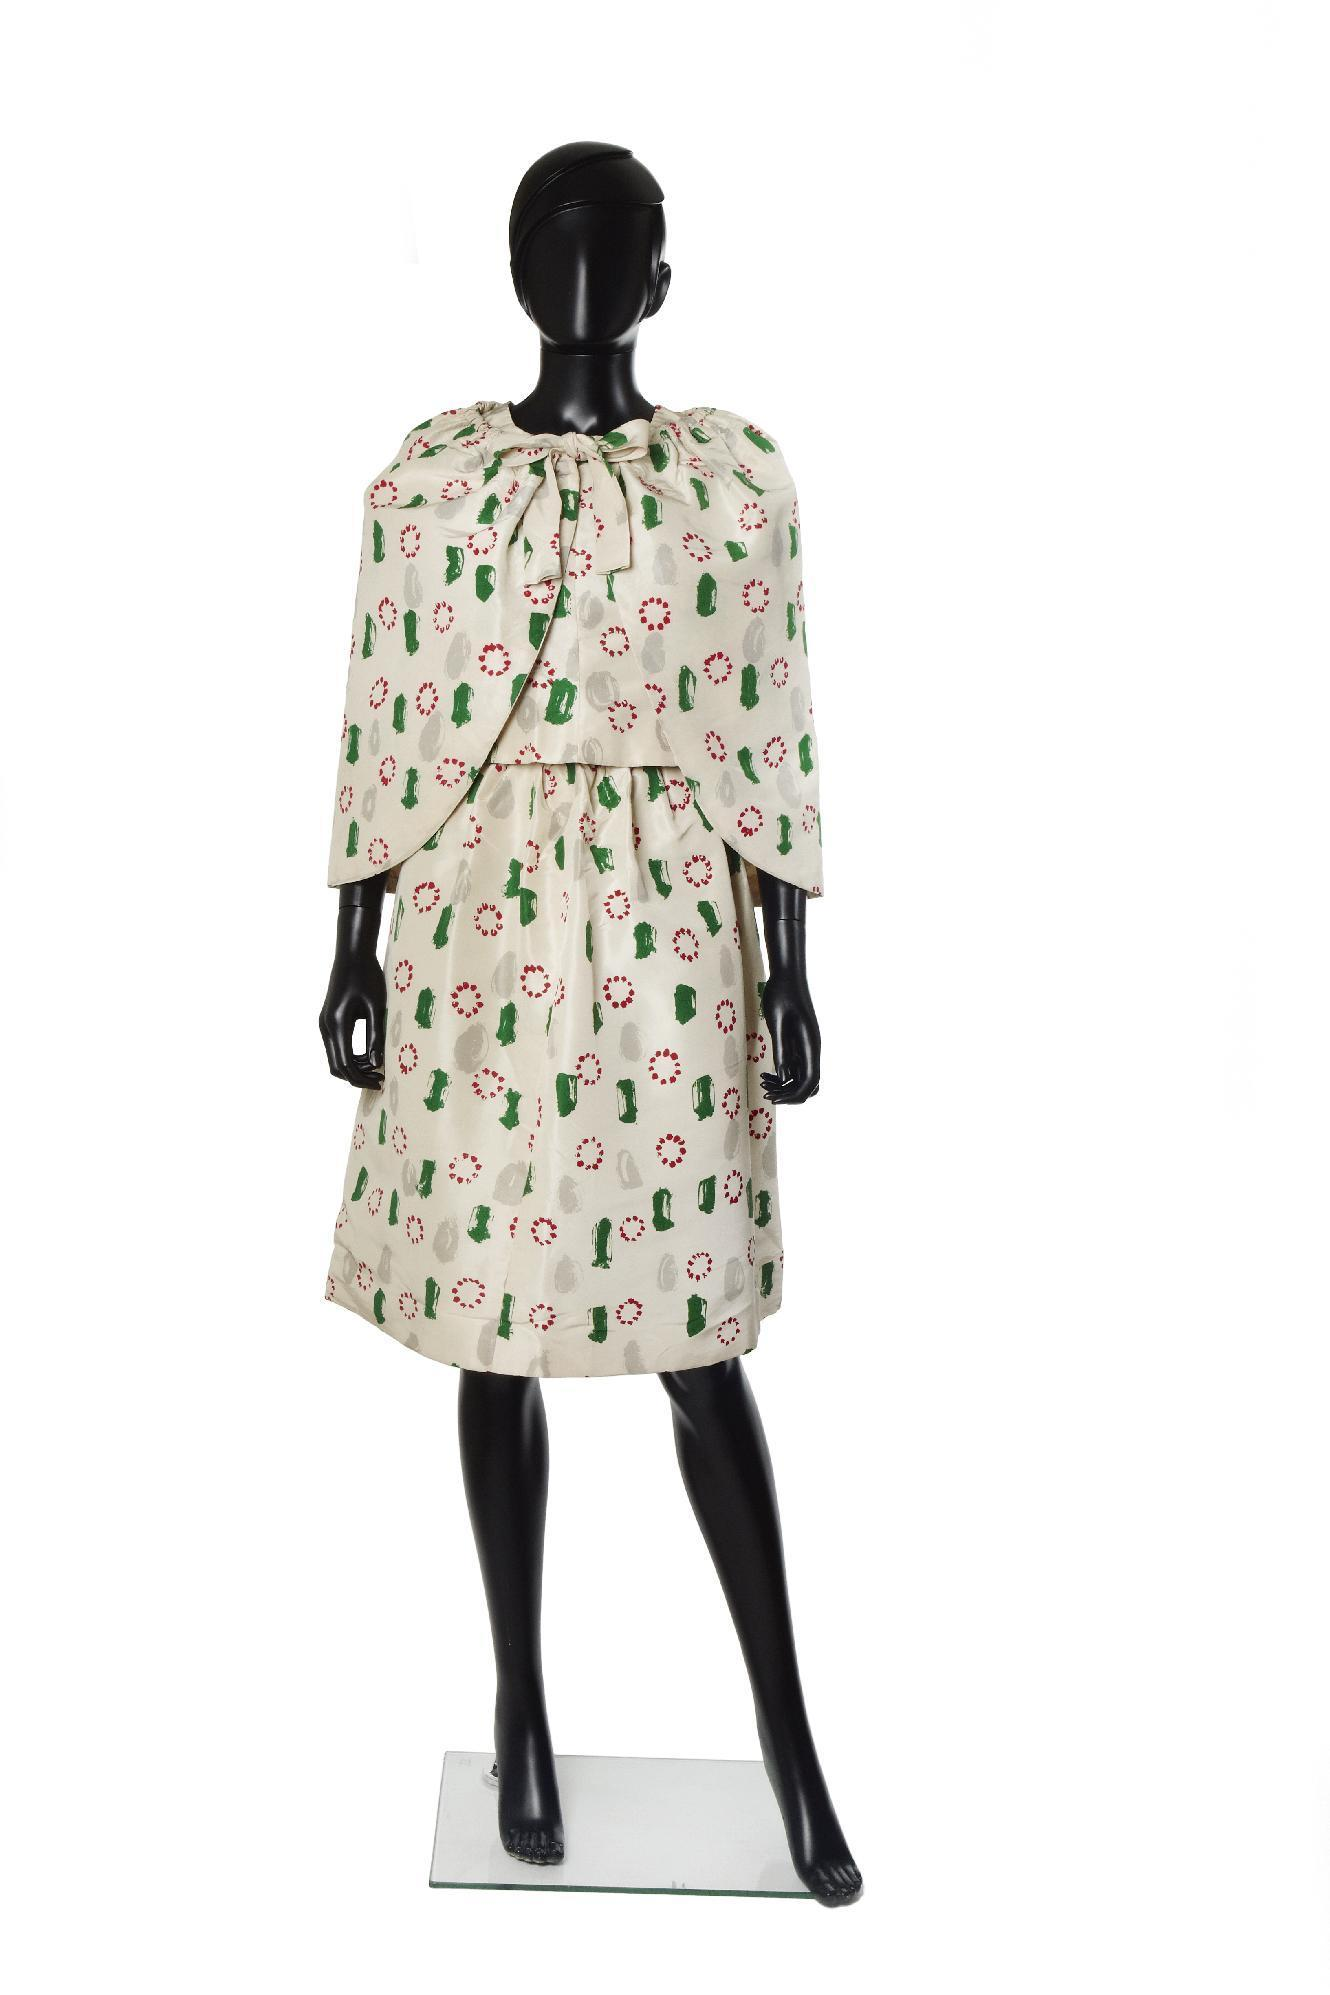 A selection from the Balenciaga archives to be sold at auction